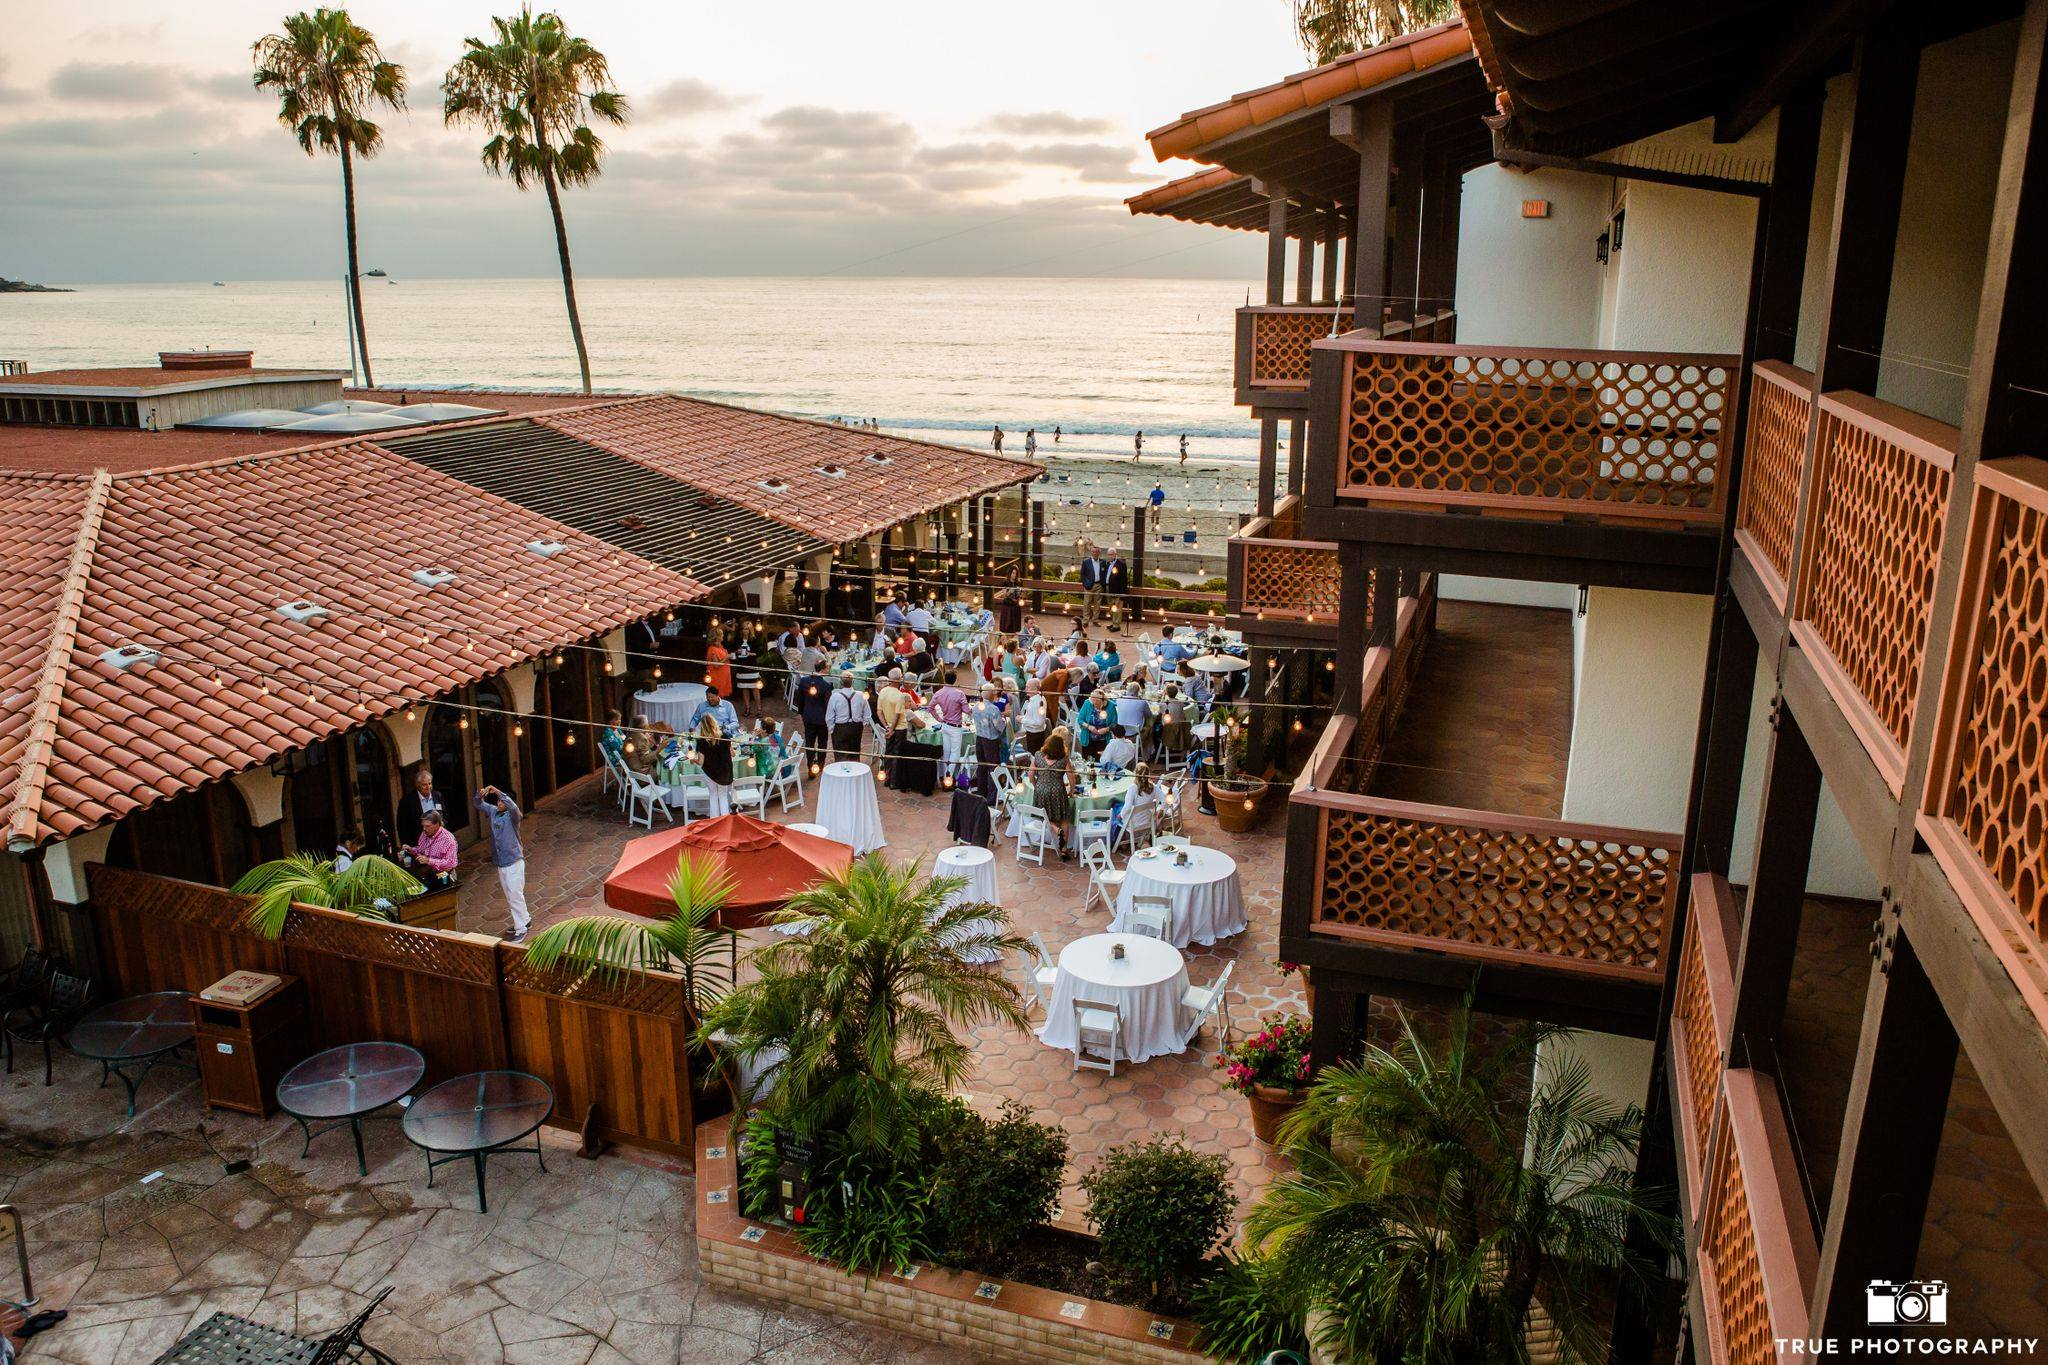 La Jolla Hotels >> La Jolla Hotels On The Beach San Diego Hotel Packages